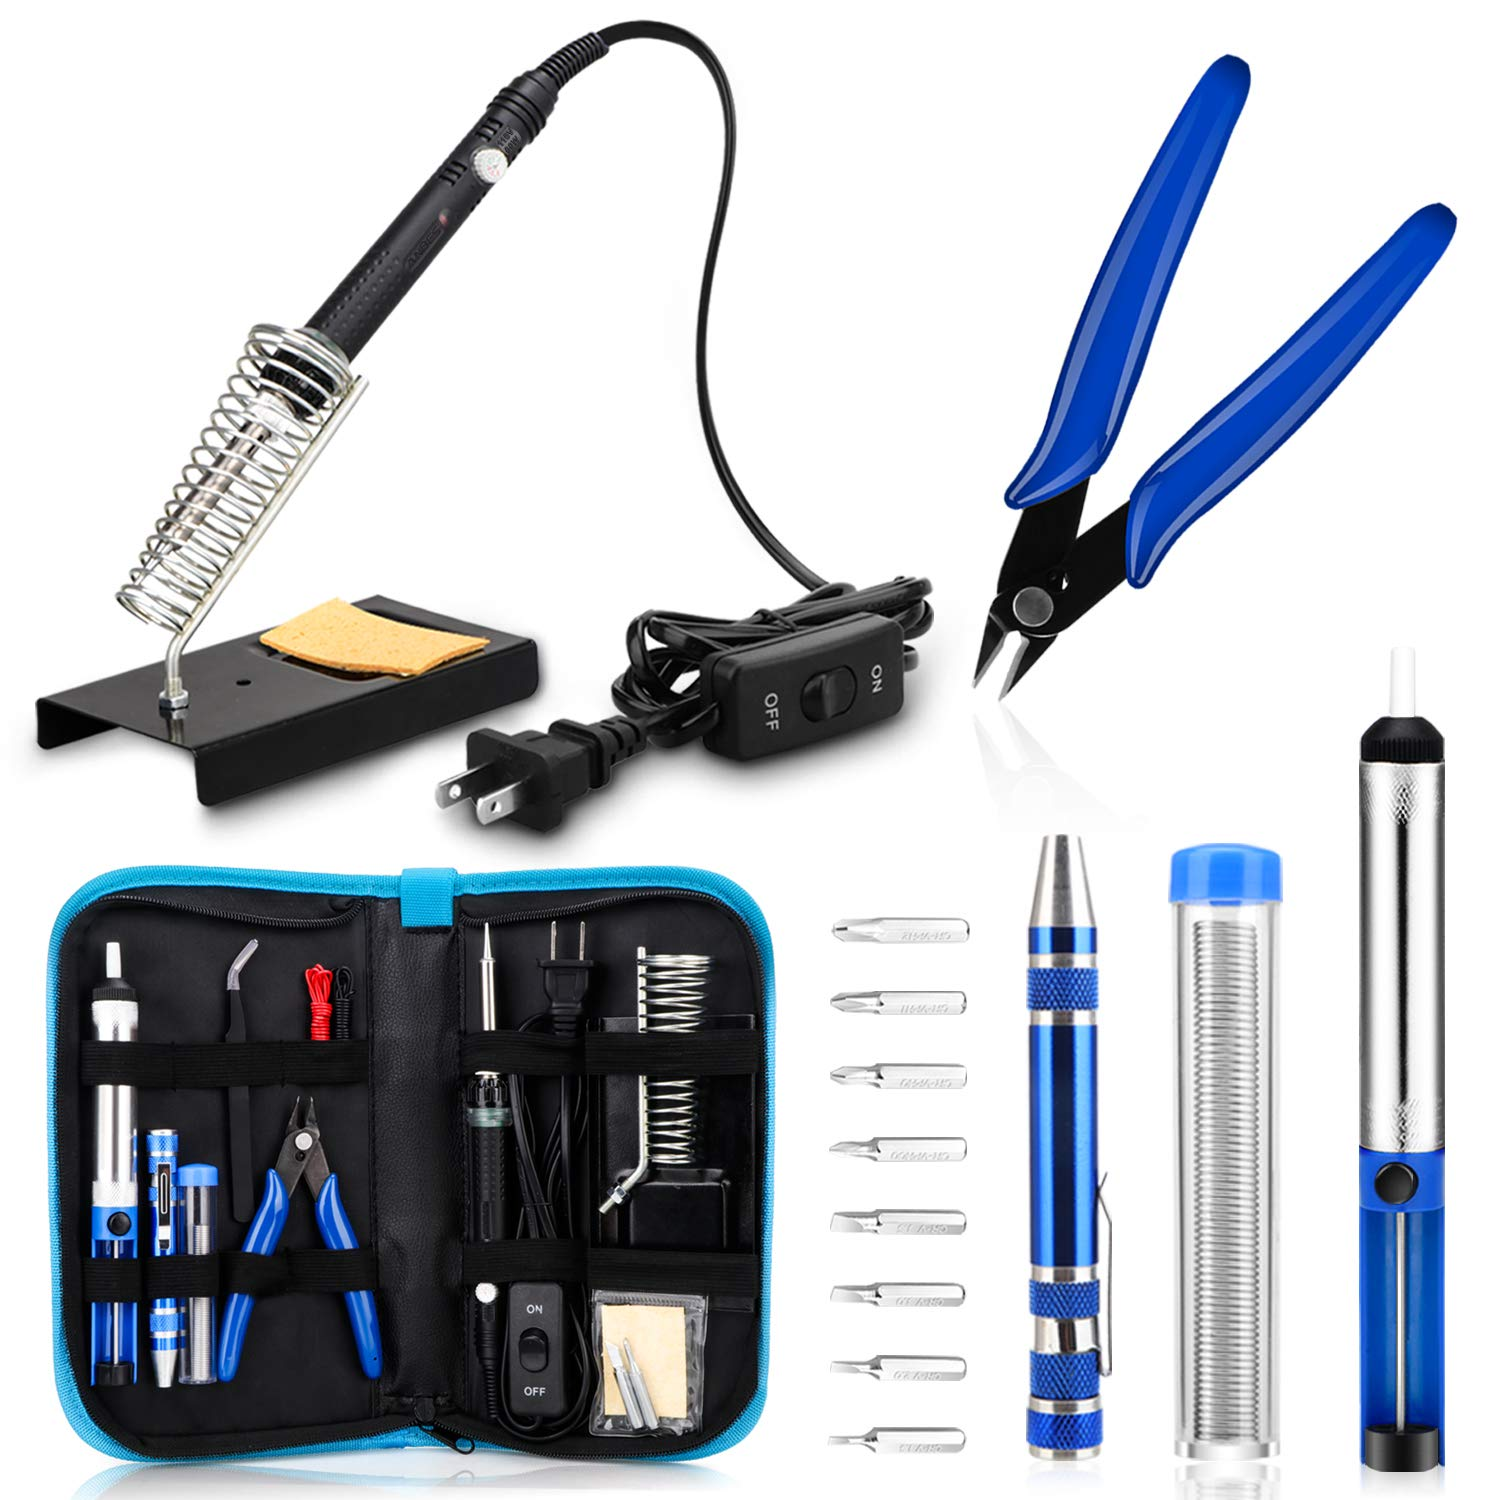 Anbes Soldering Iron Kit, [Upgraded] 60W Adjustable Temperature Welding Tool with ON-OFF Switch, 8-in-1 Screwdrivers, 2pcs Soldering Iron Tips, Solder Sucker, Wire Cutter,Tweezers,Soldering Iron Stand by ANBES